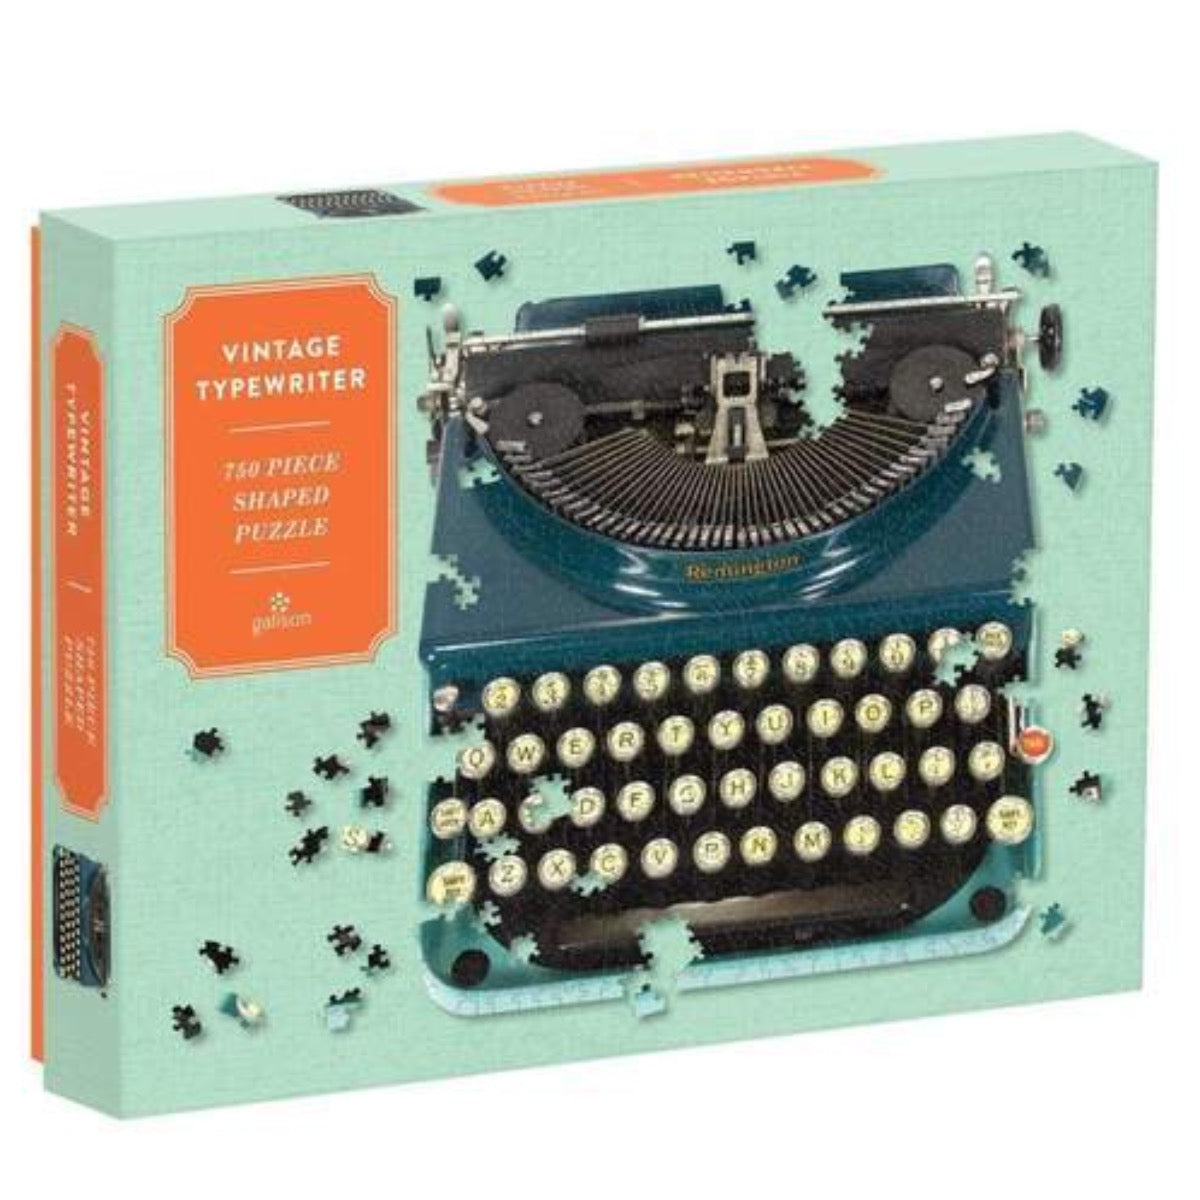 Vintage Typewriter750 Piece Shaped Jigsaw Puzzle